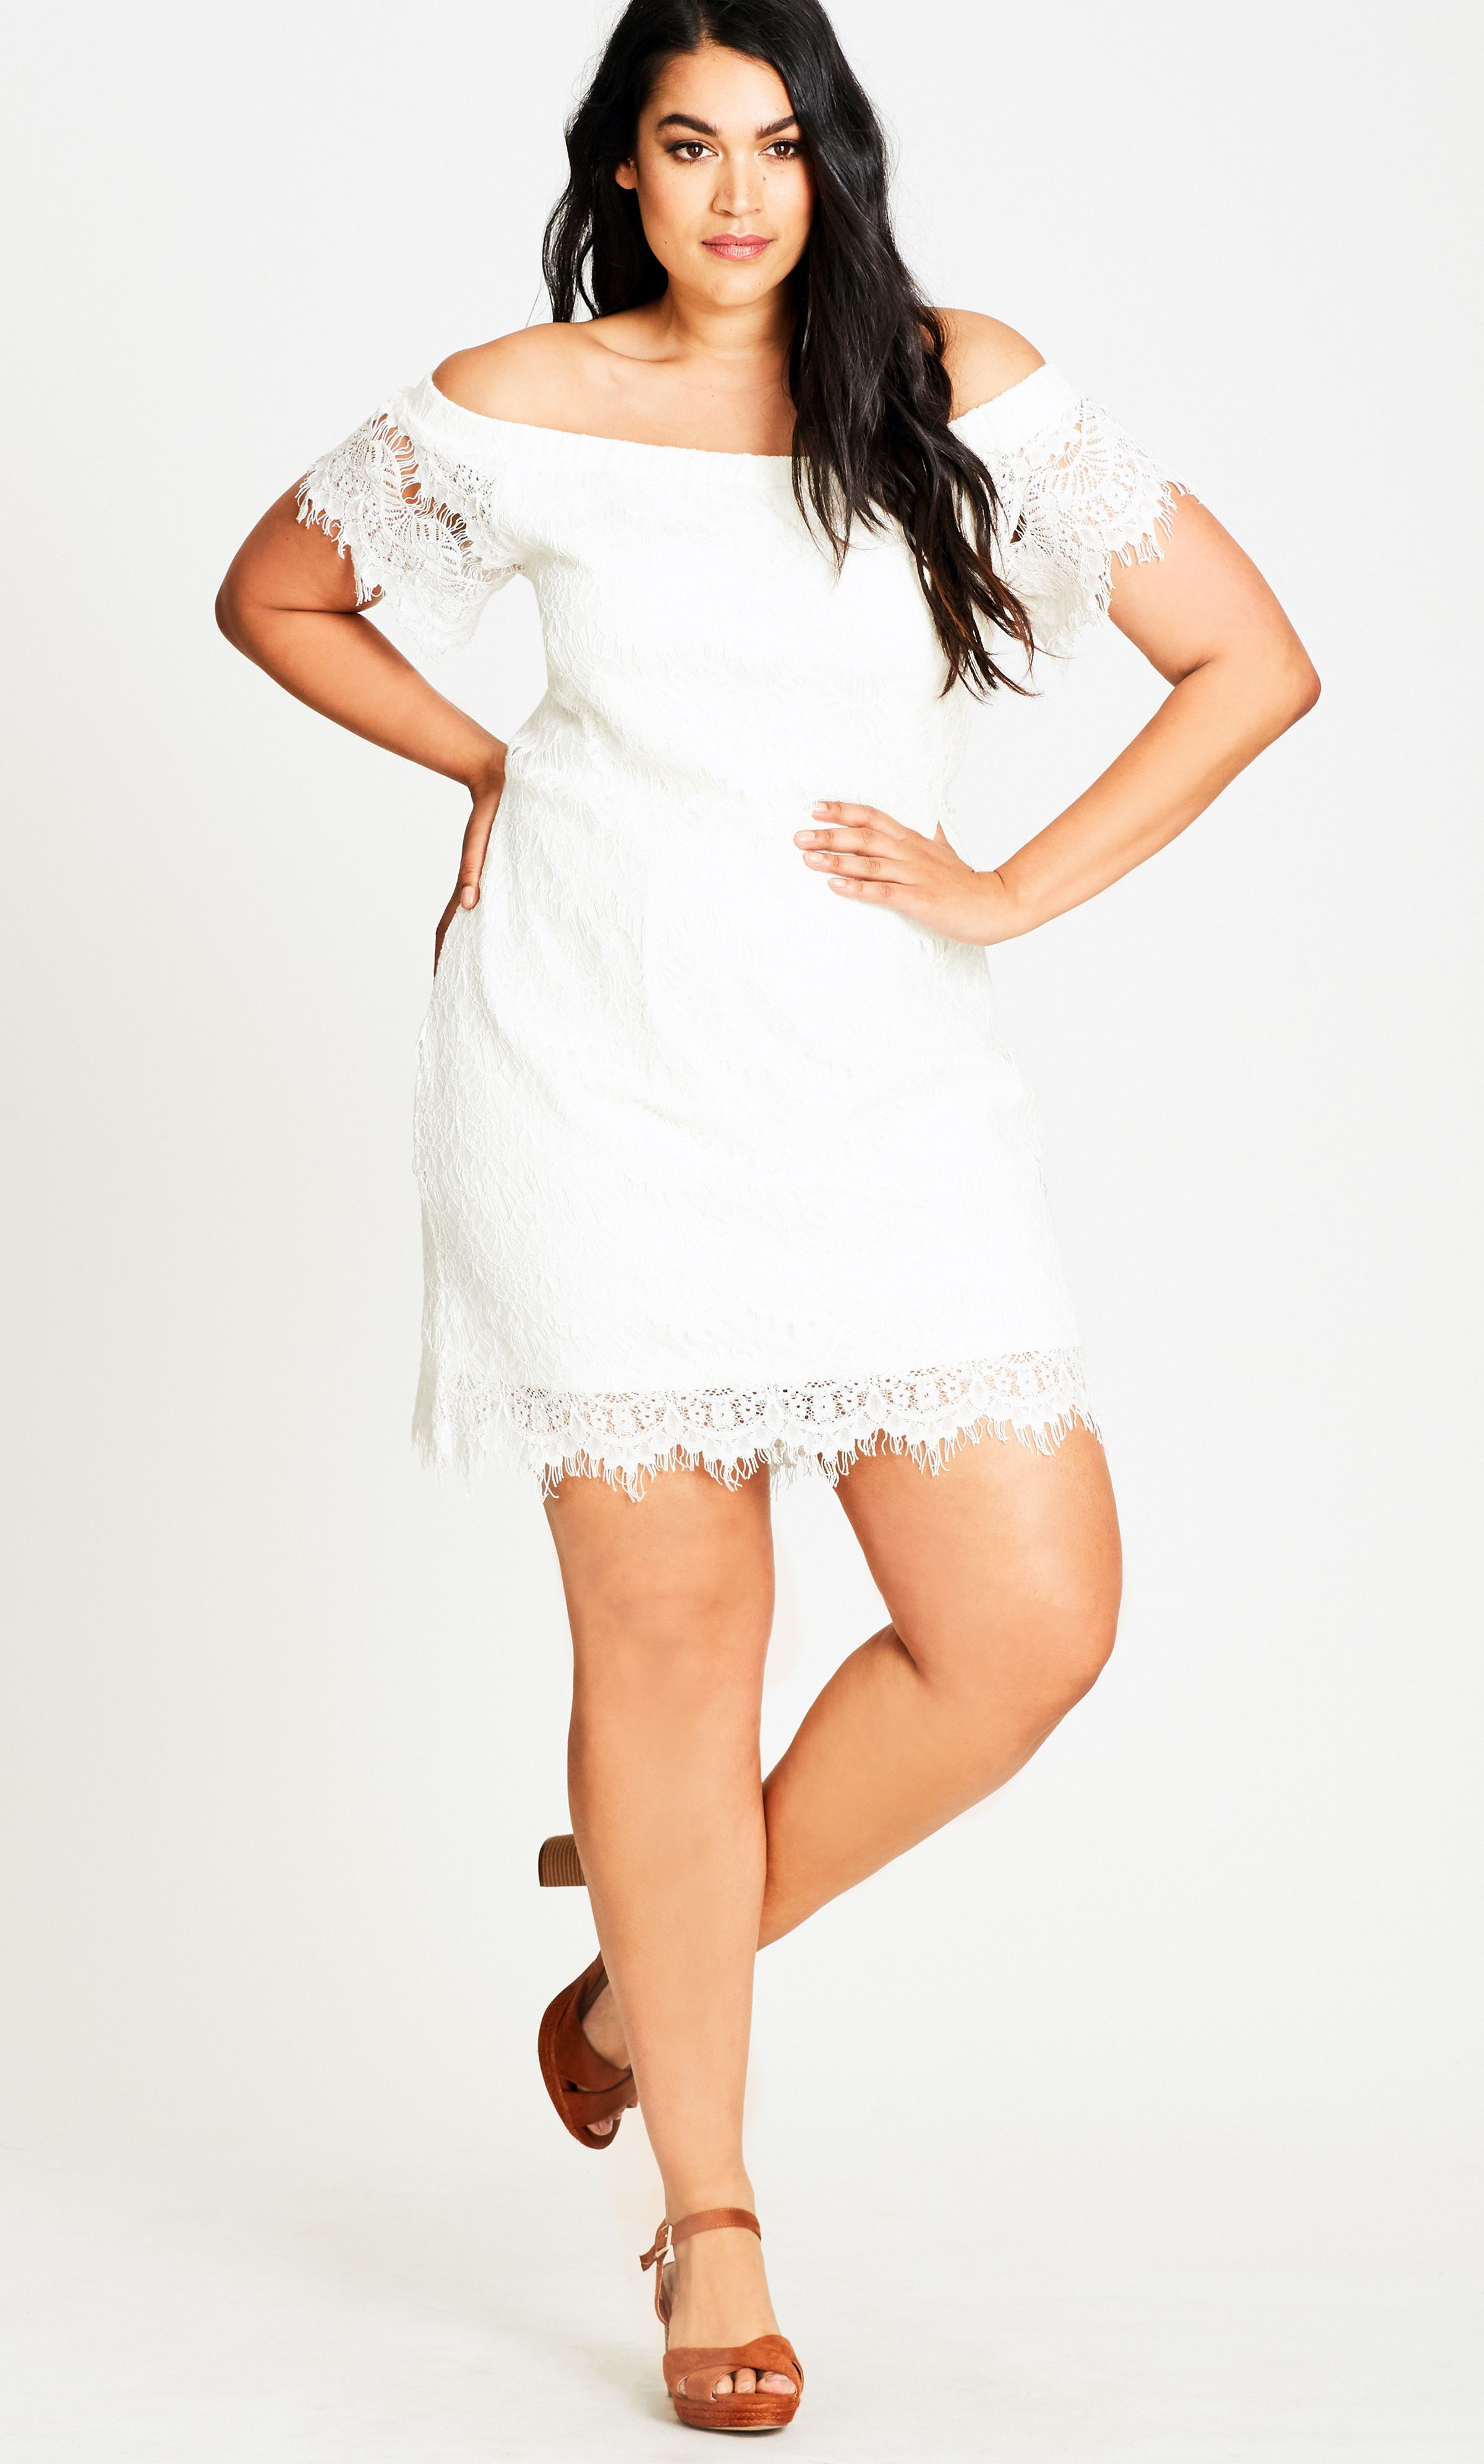 Plus Size Plus Size Ivory Lace Off Shoulder Shift Dress In Ivory At City Chic Citychiconline Com Plus Size Party Dresses Plus Size Fashion Dresses